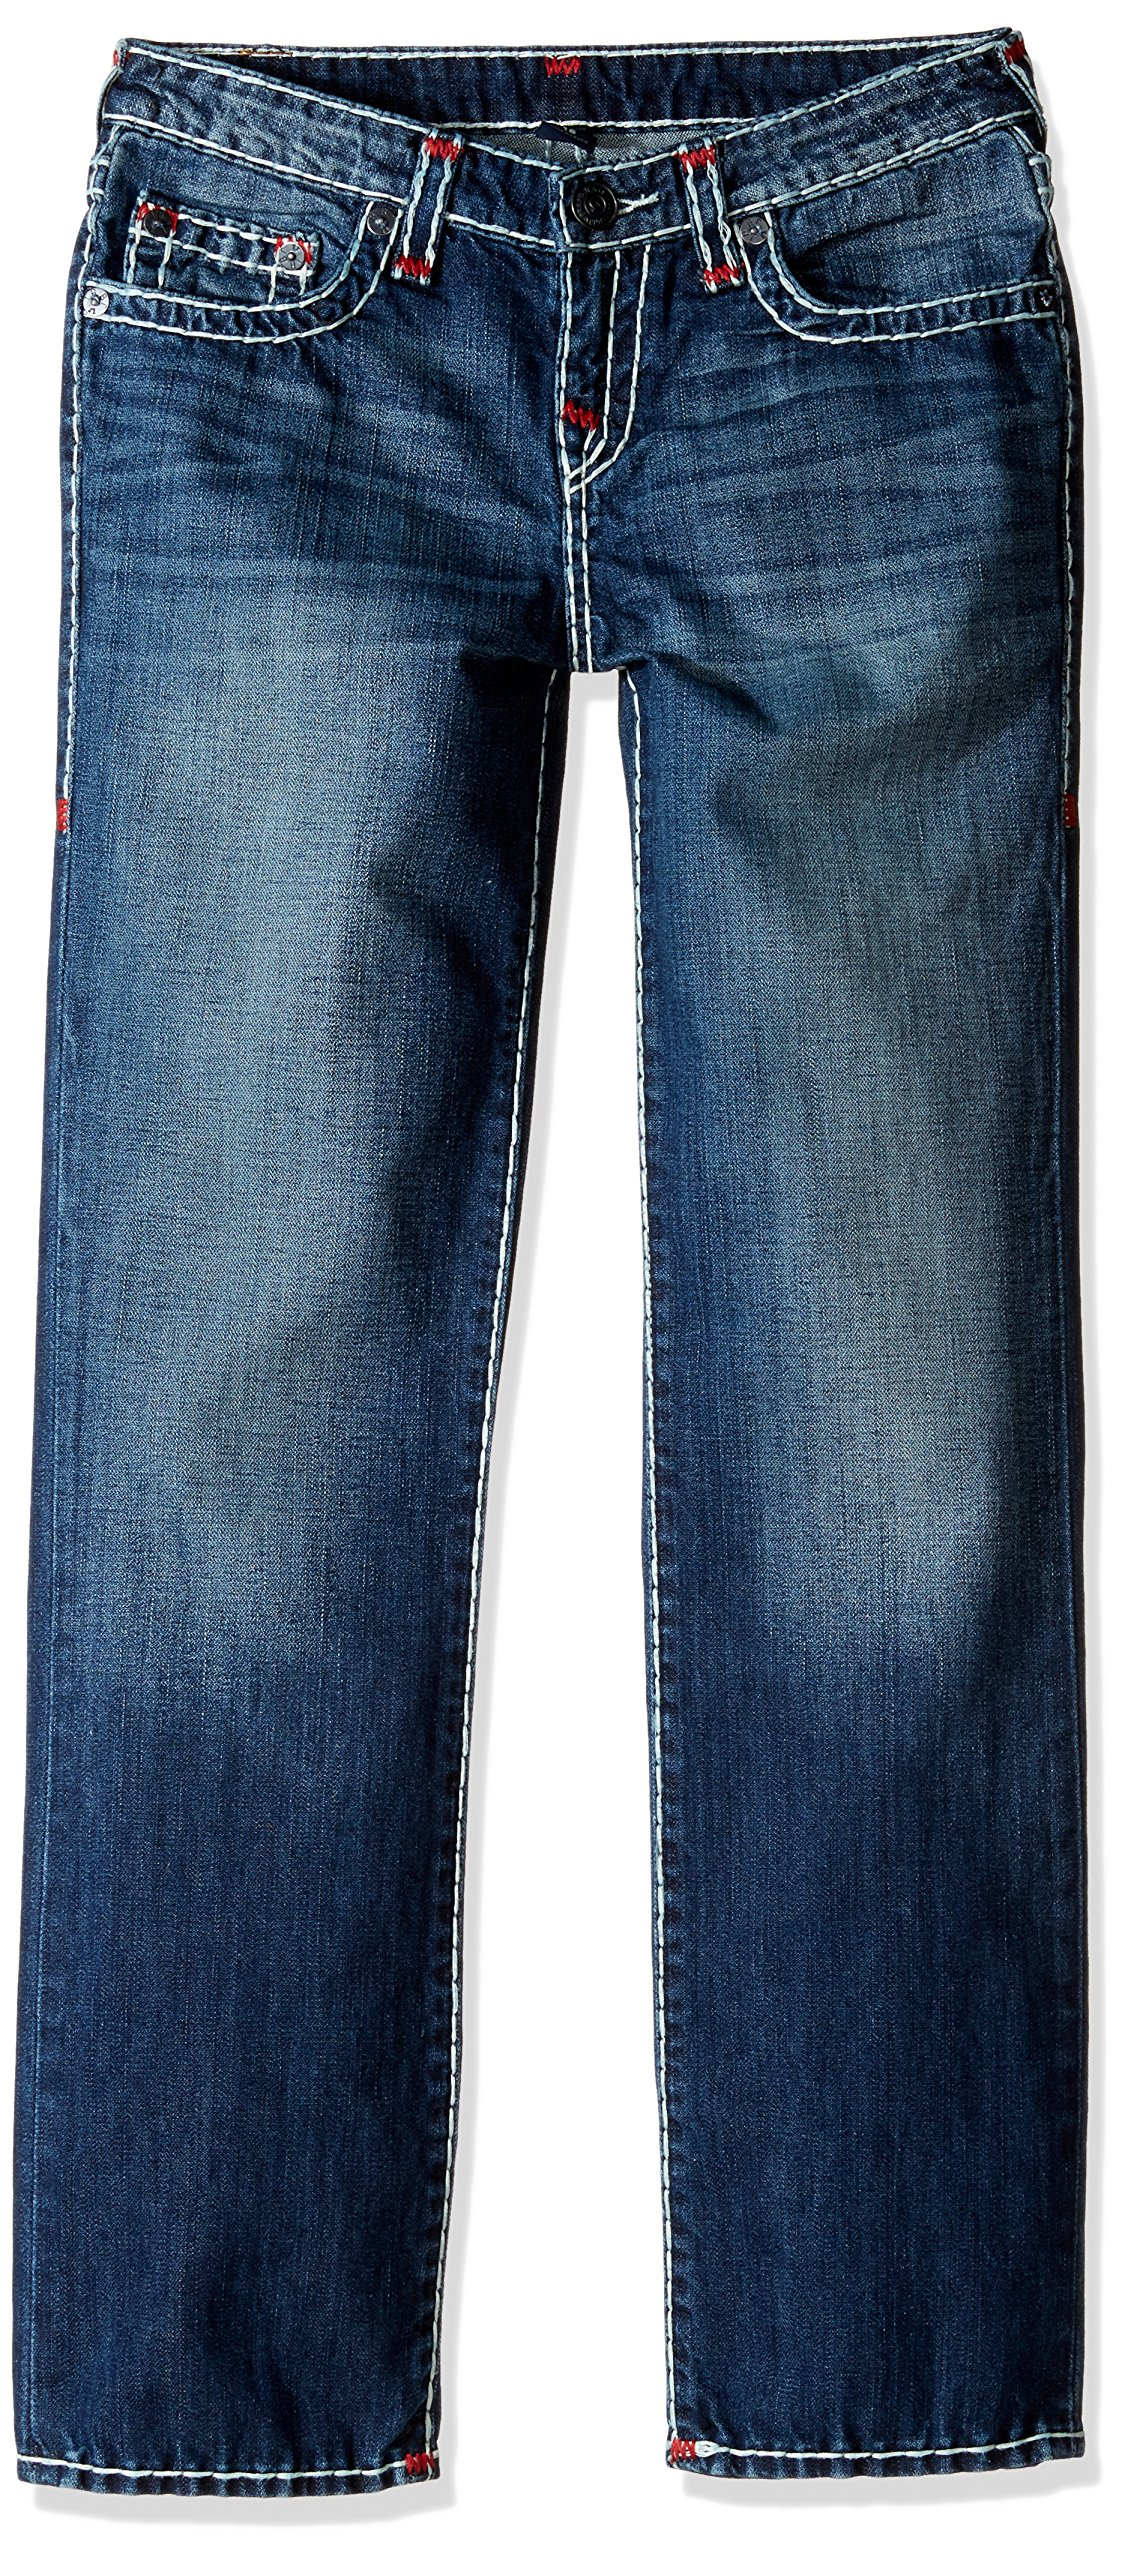 True Religion Boys' Ricky Contrast Super T Jeans, Grand Wash, 5